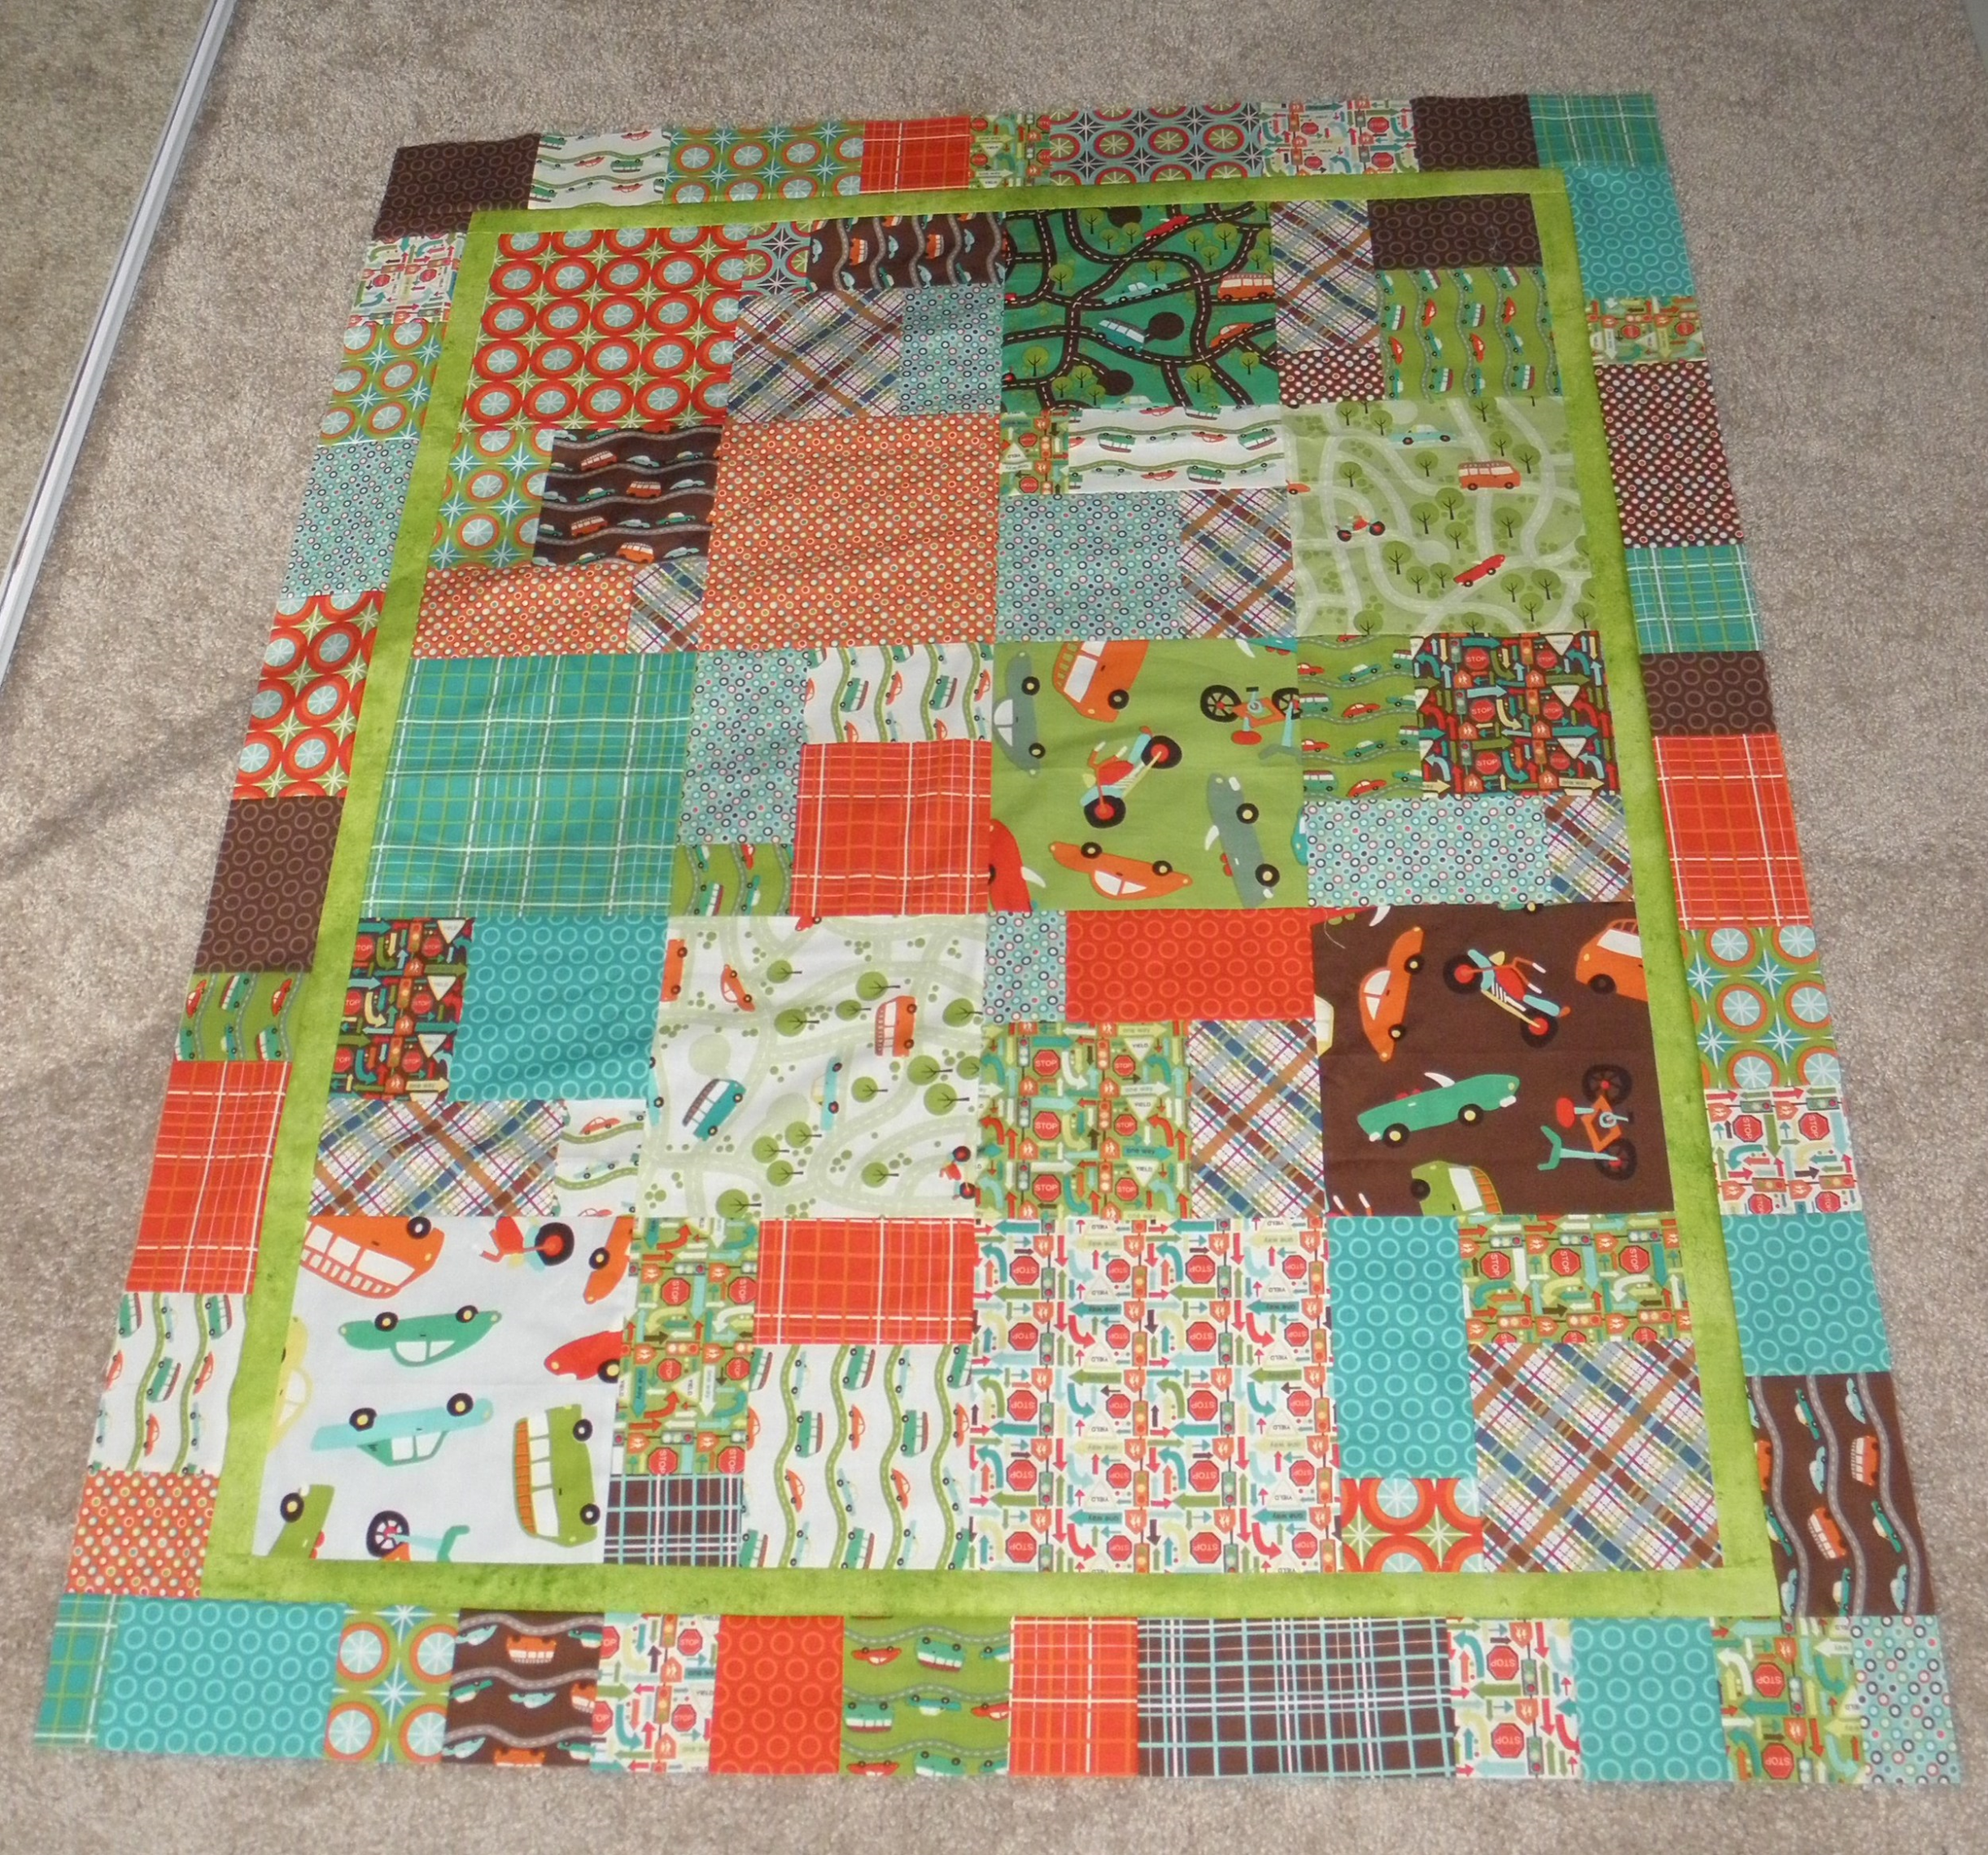 On the Go finished top